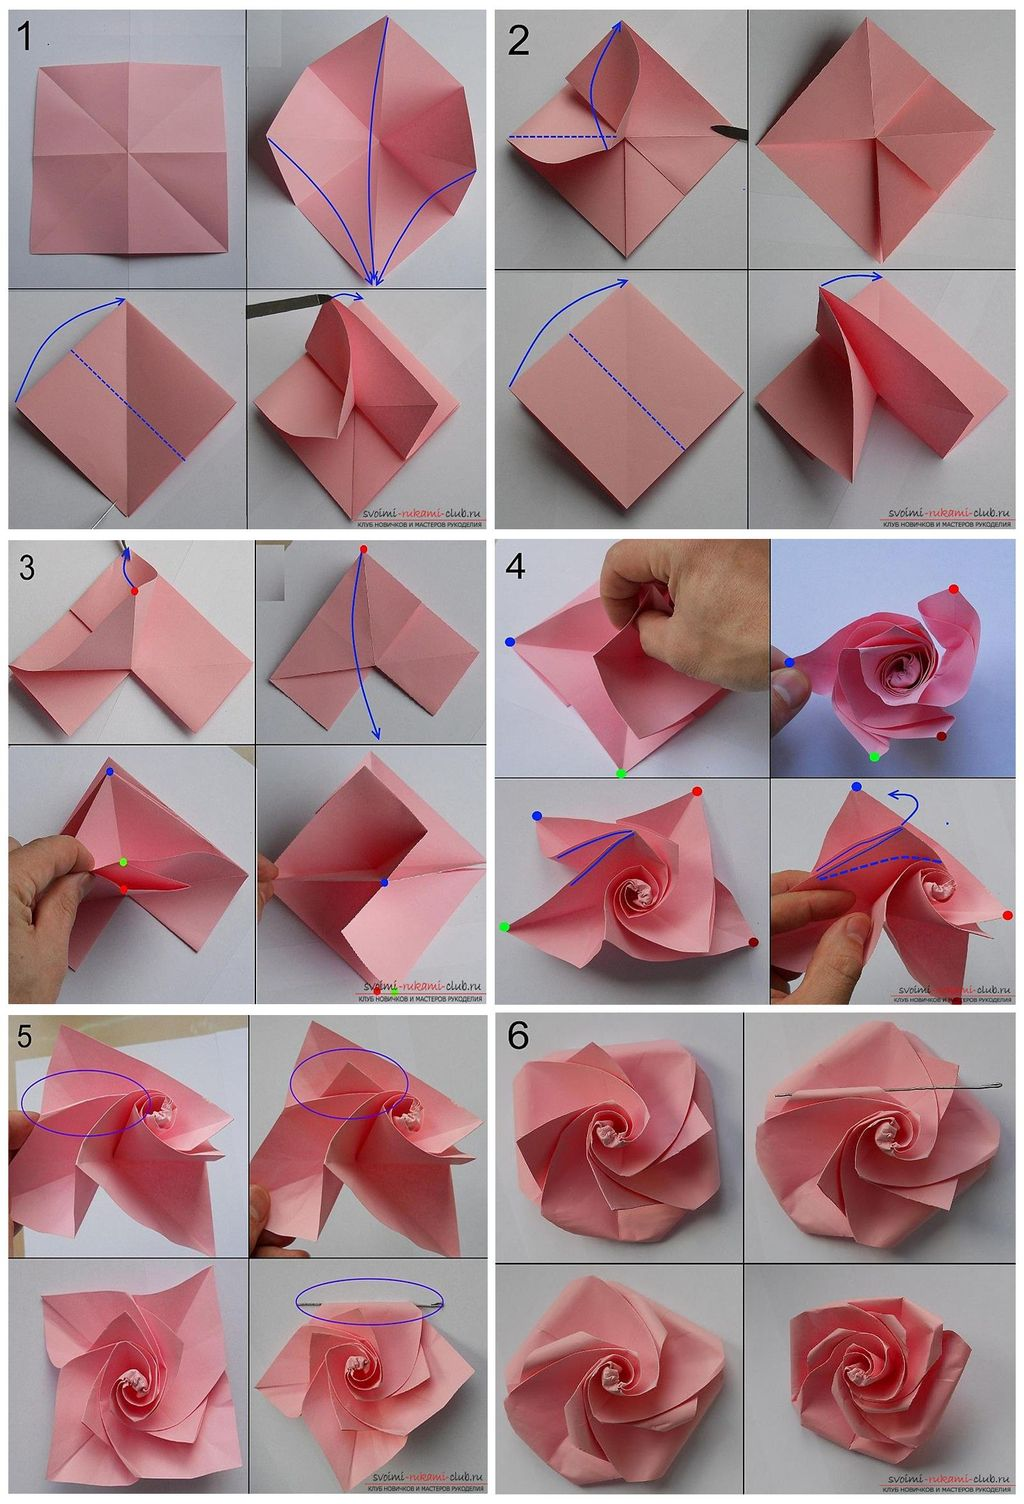 Origami rose from paper